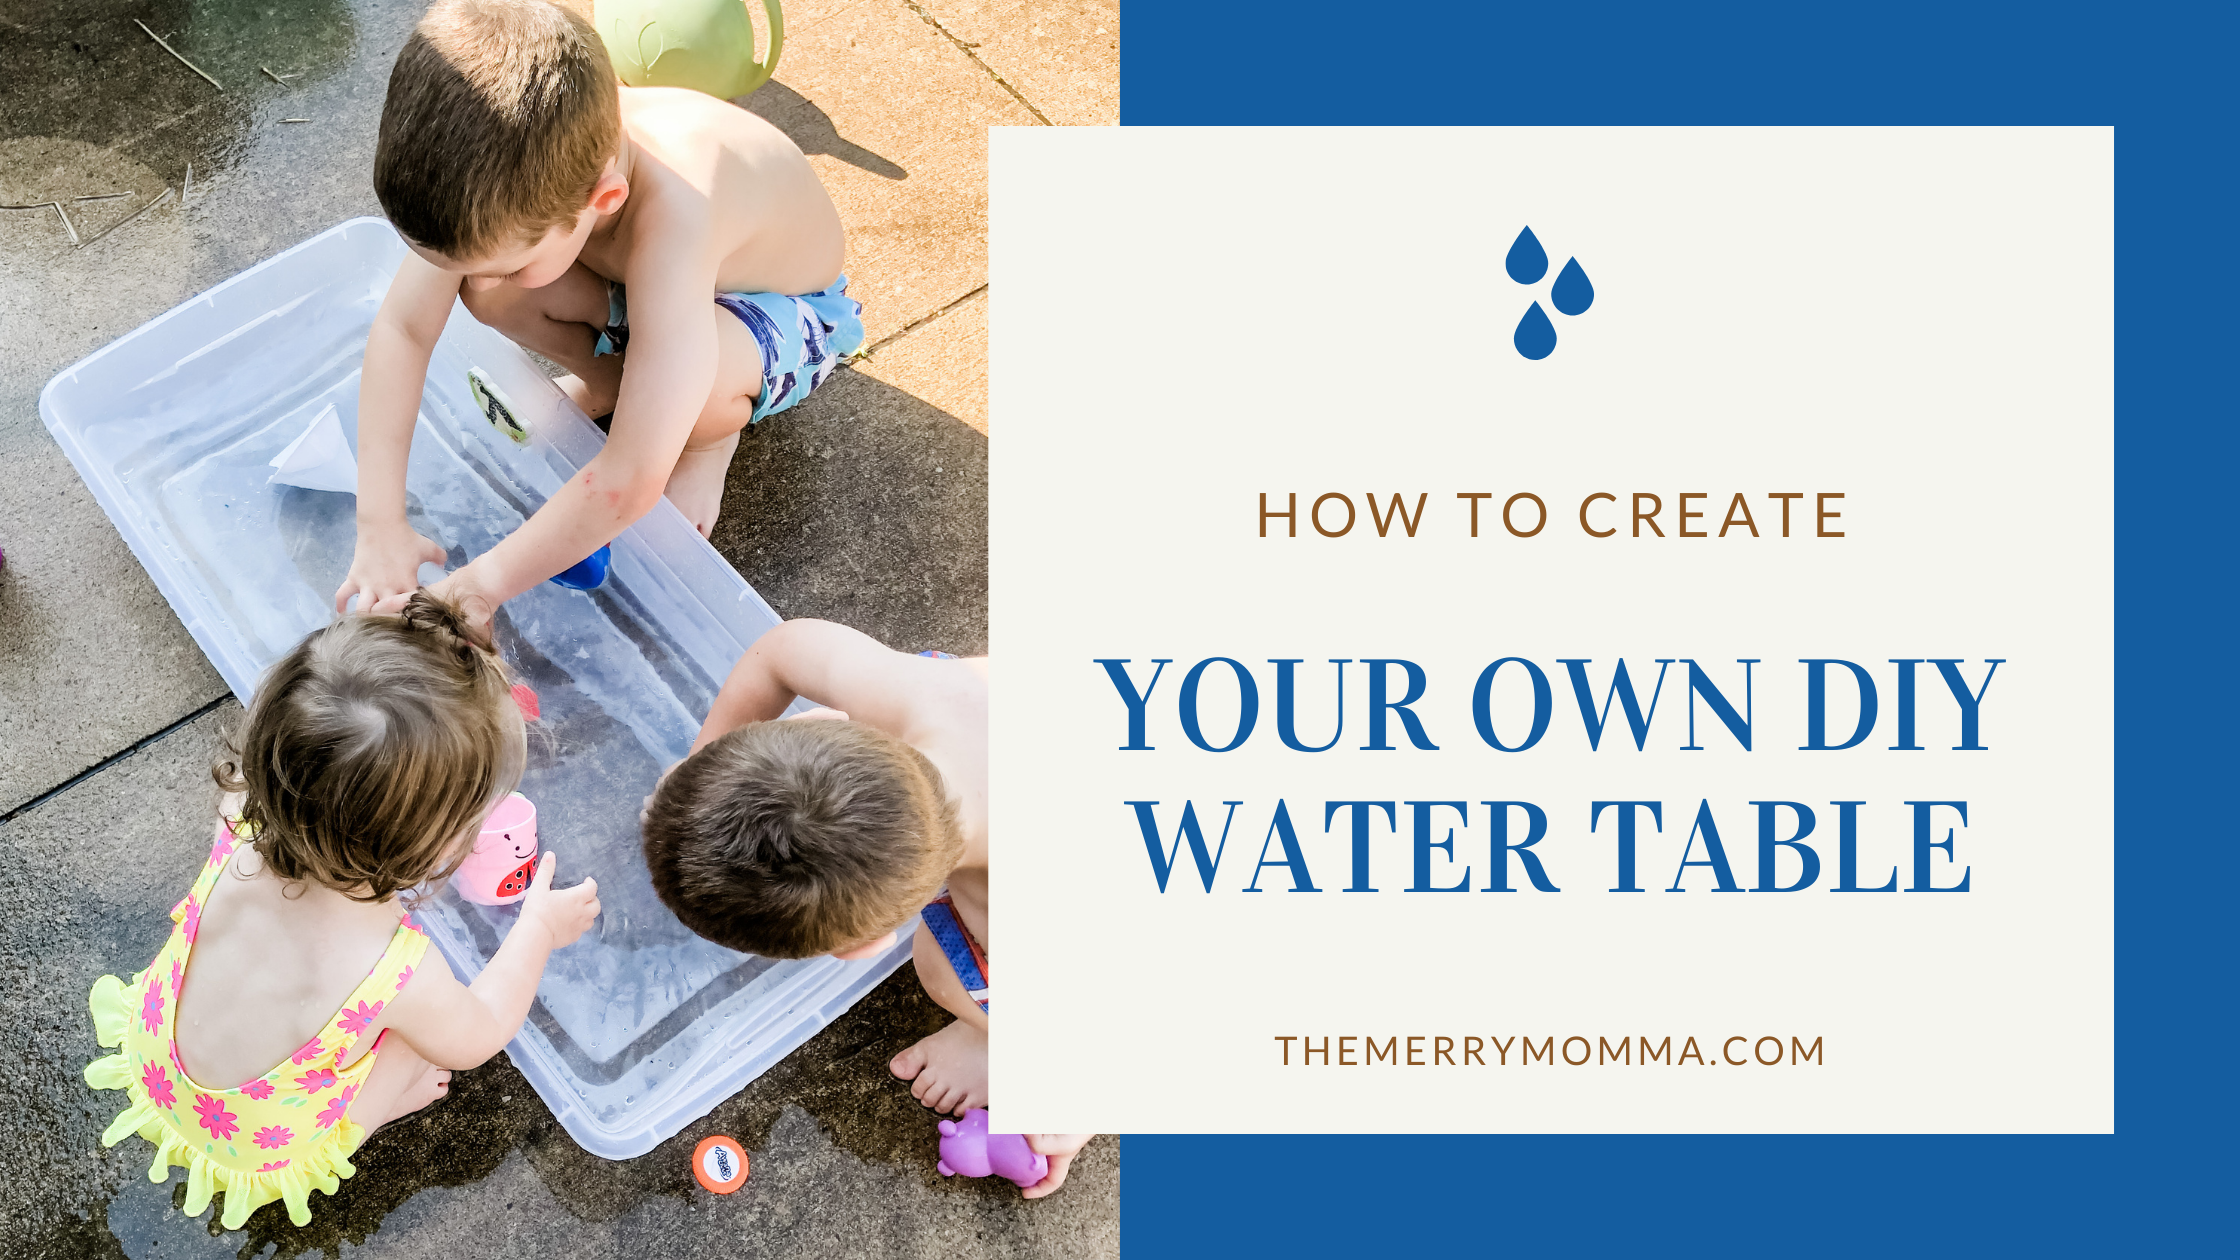 How to Create Your Own DIY Water Table